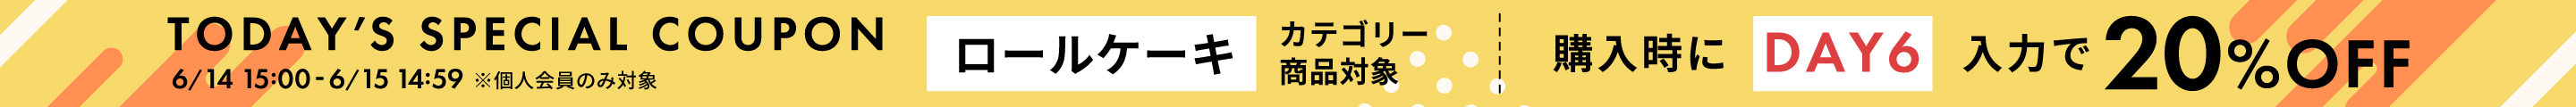 TODAY'S SPECIAL COUPON 20%OFF 対象カテゴリ